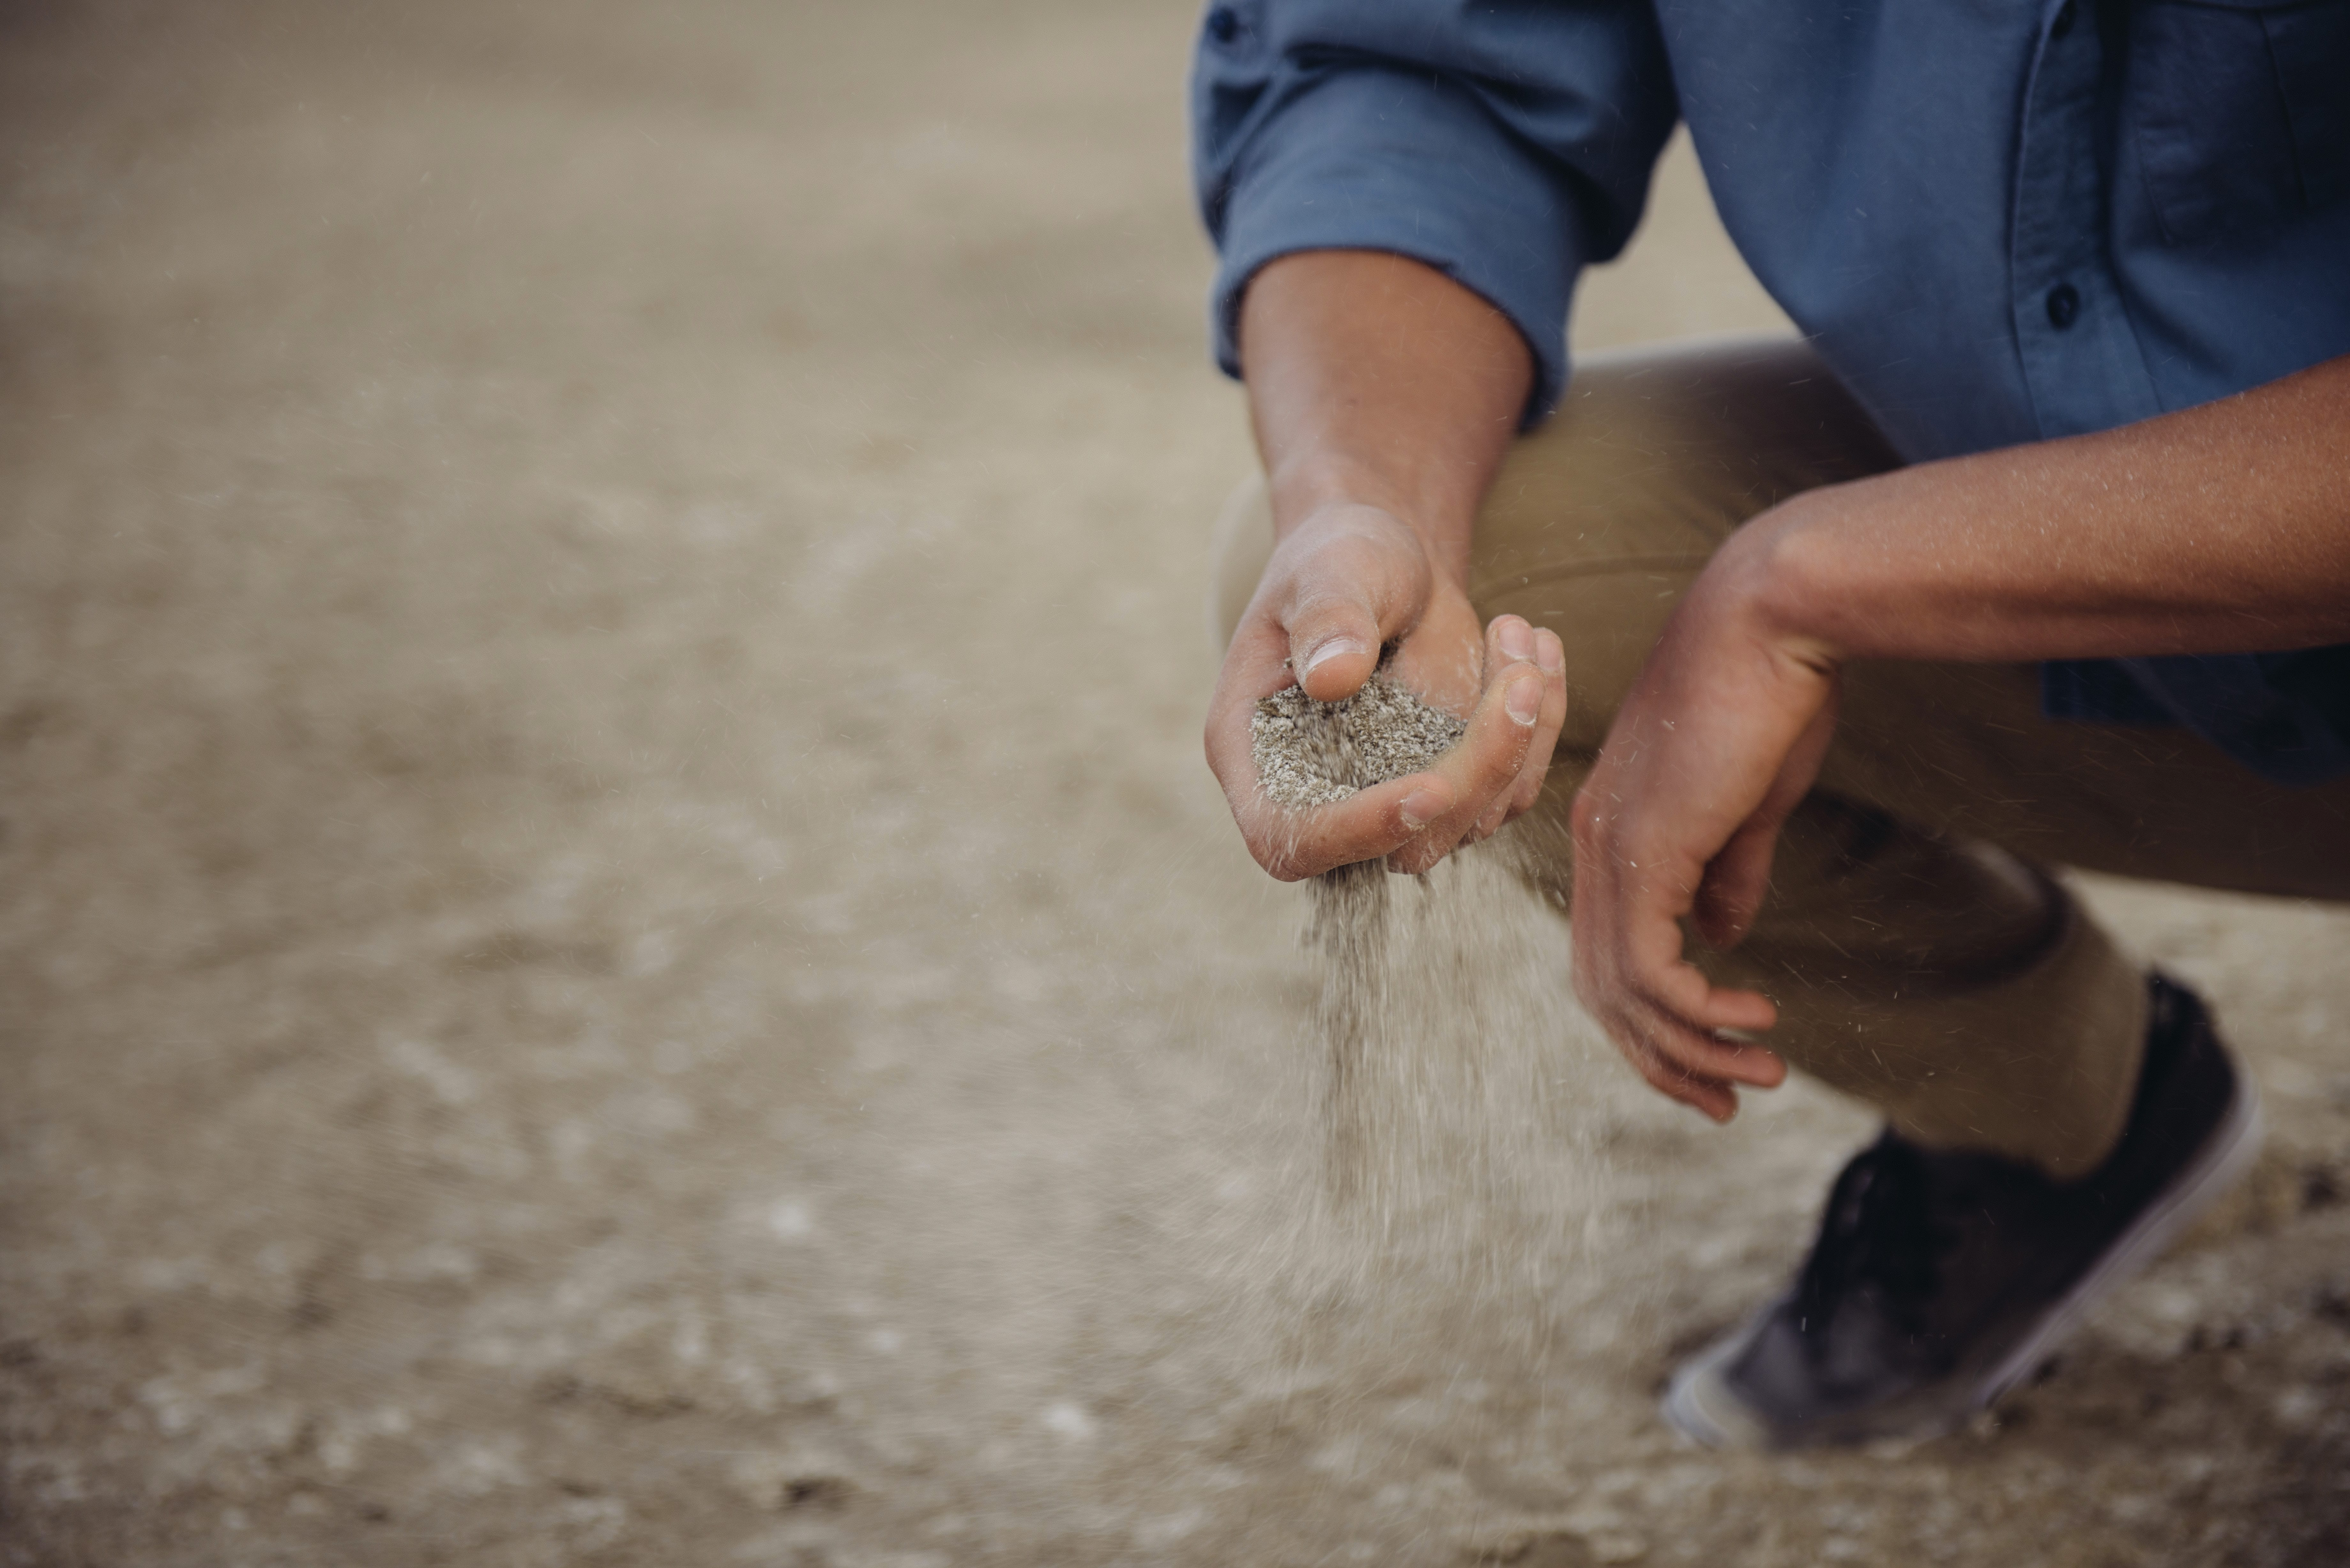 Man crouches down with a handful of sand that slips through his fingers; image by Forrest Cavale, via Unsplash.com.